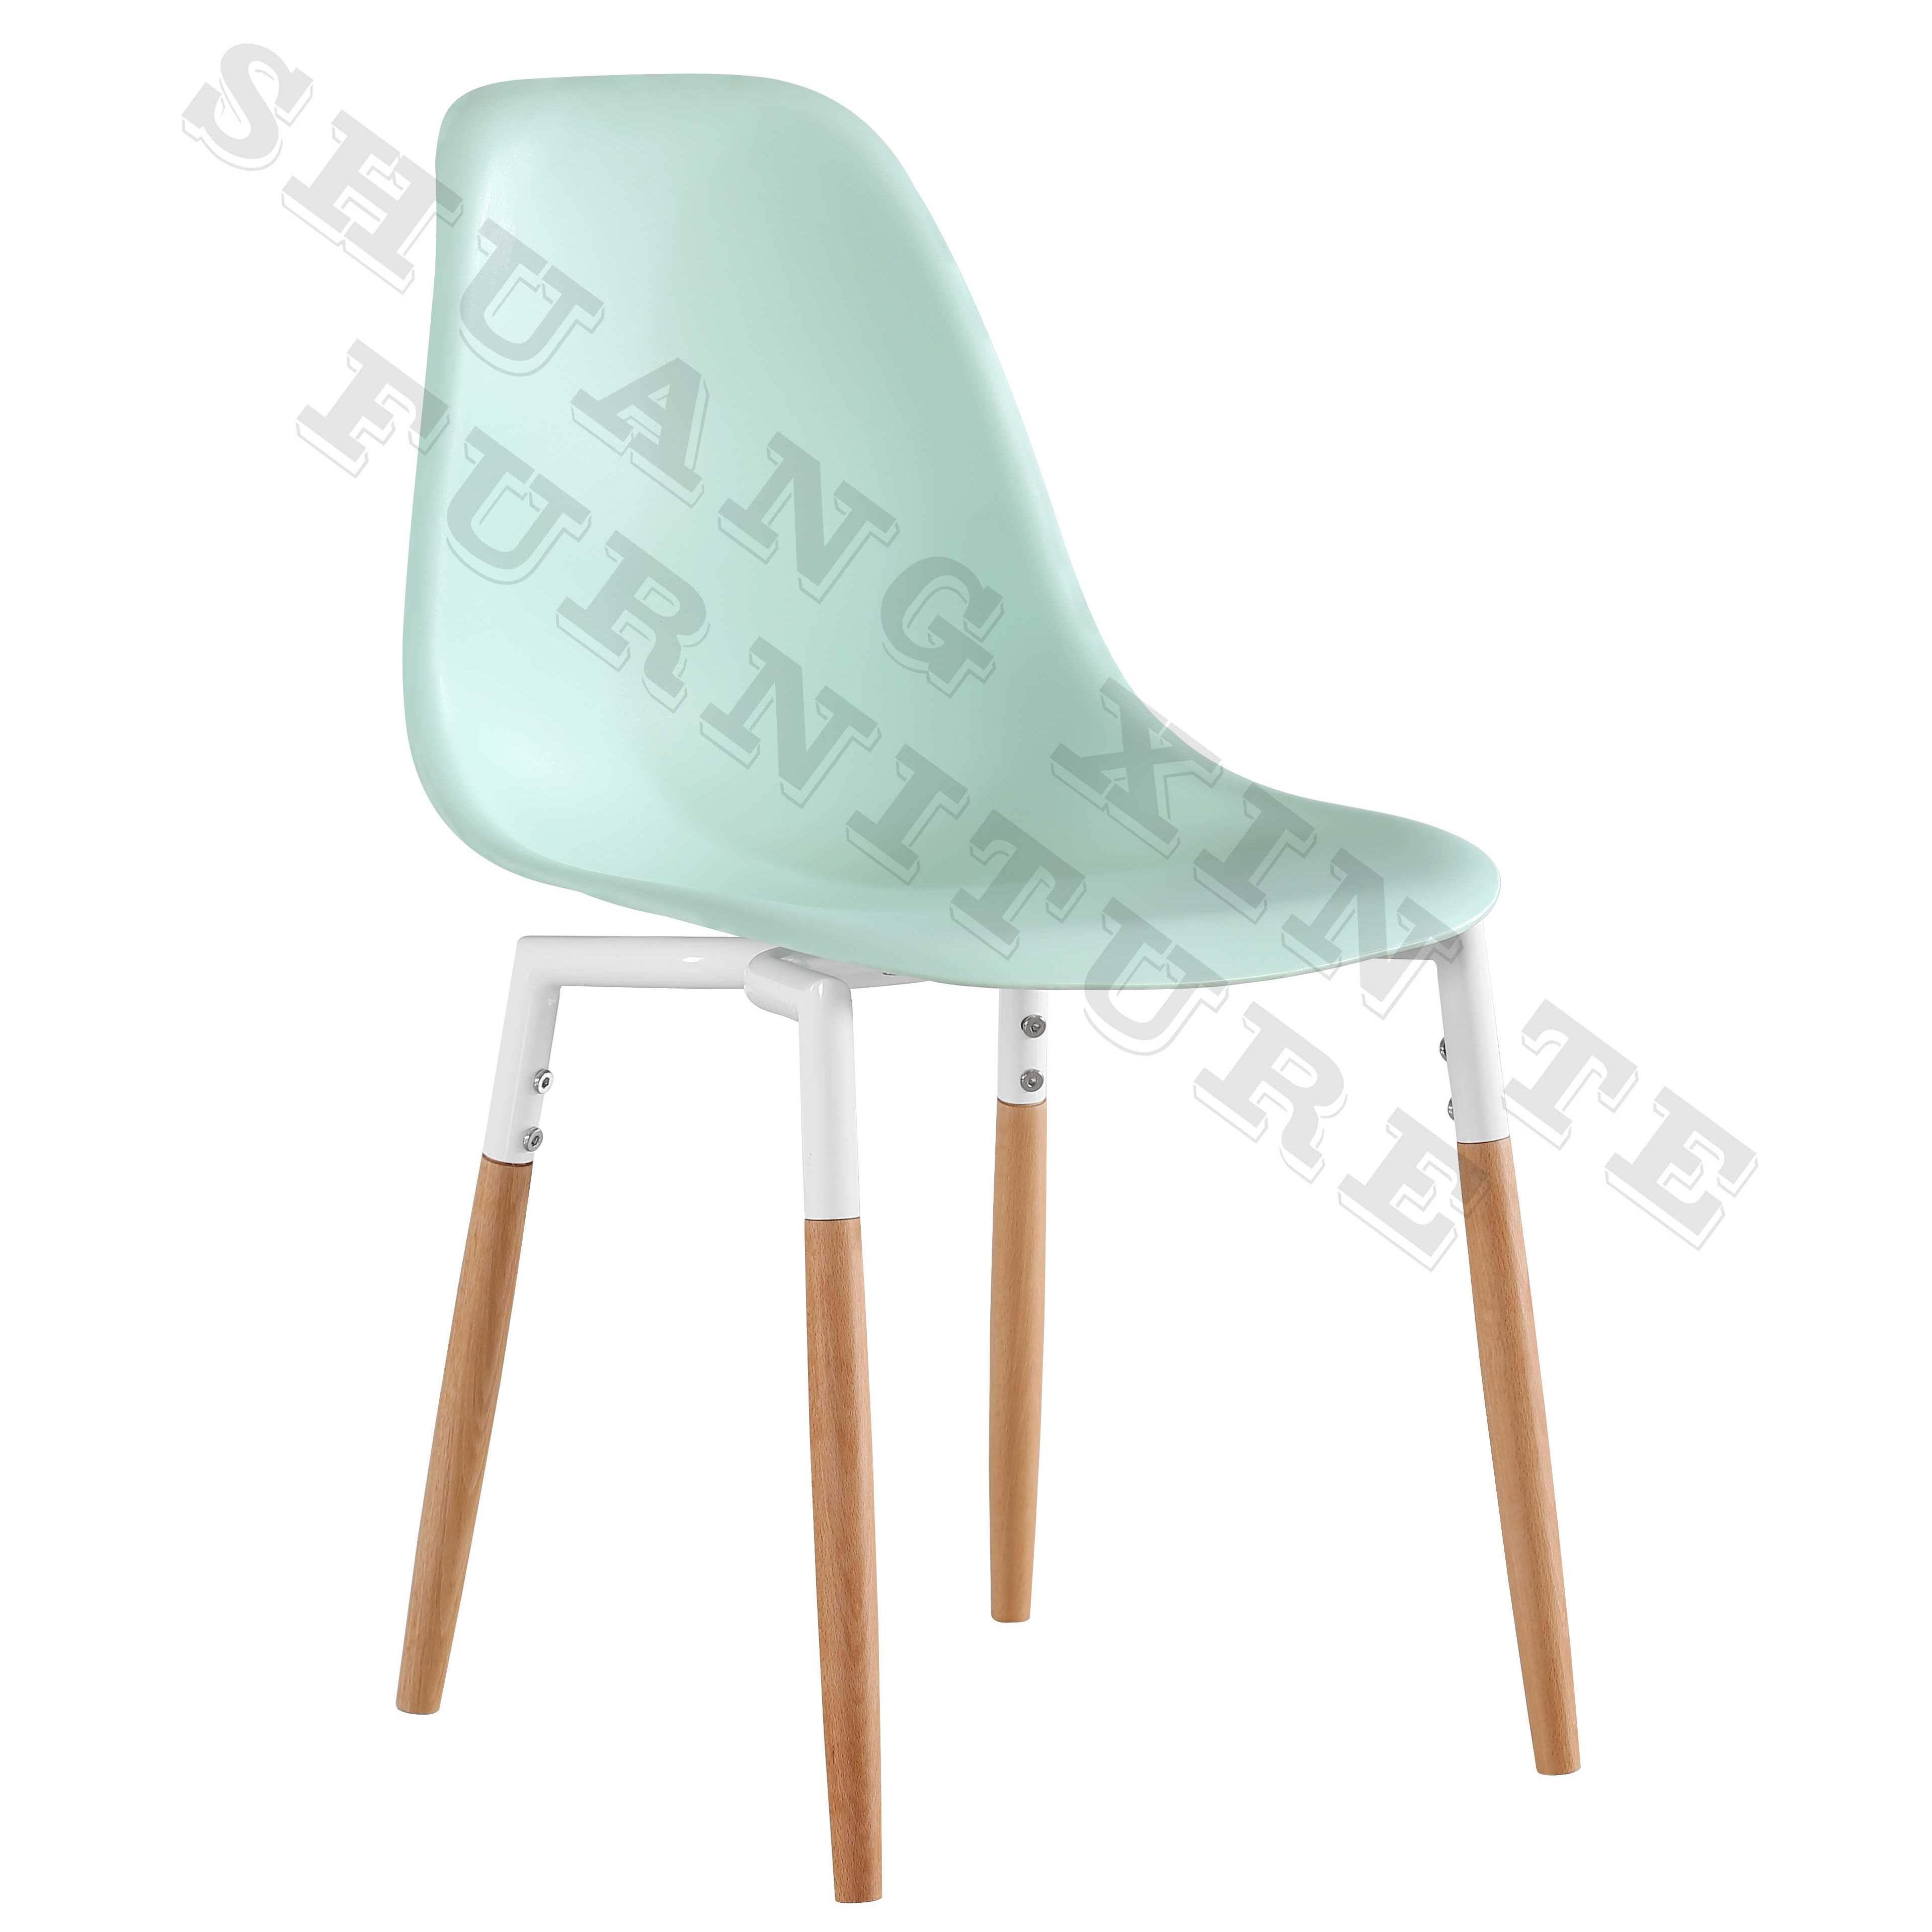 Newly designed lower-priced interior furniture with sturdy wooden chair legs